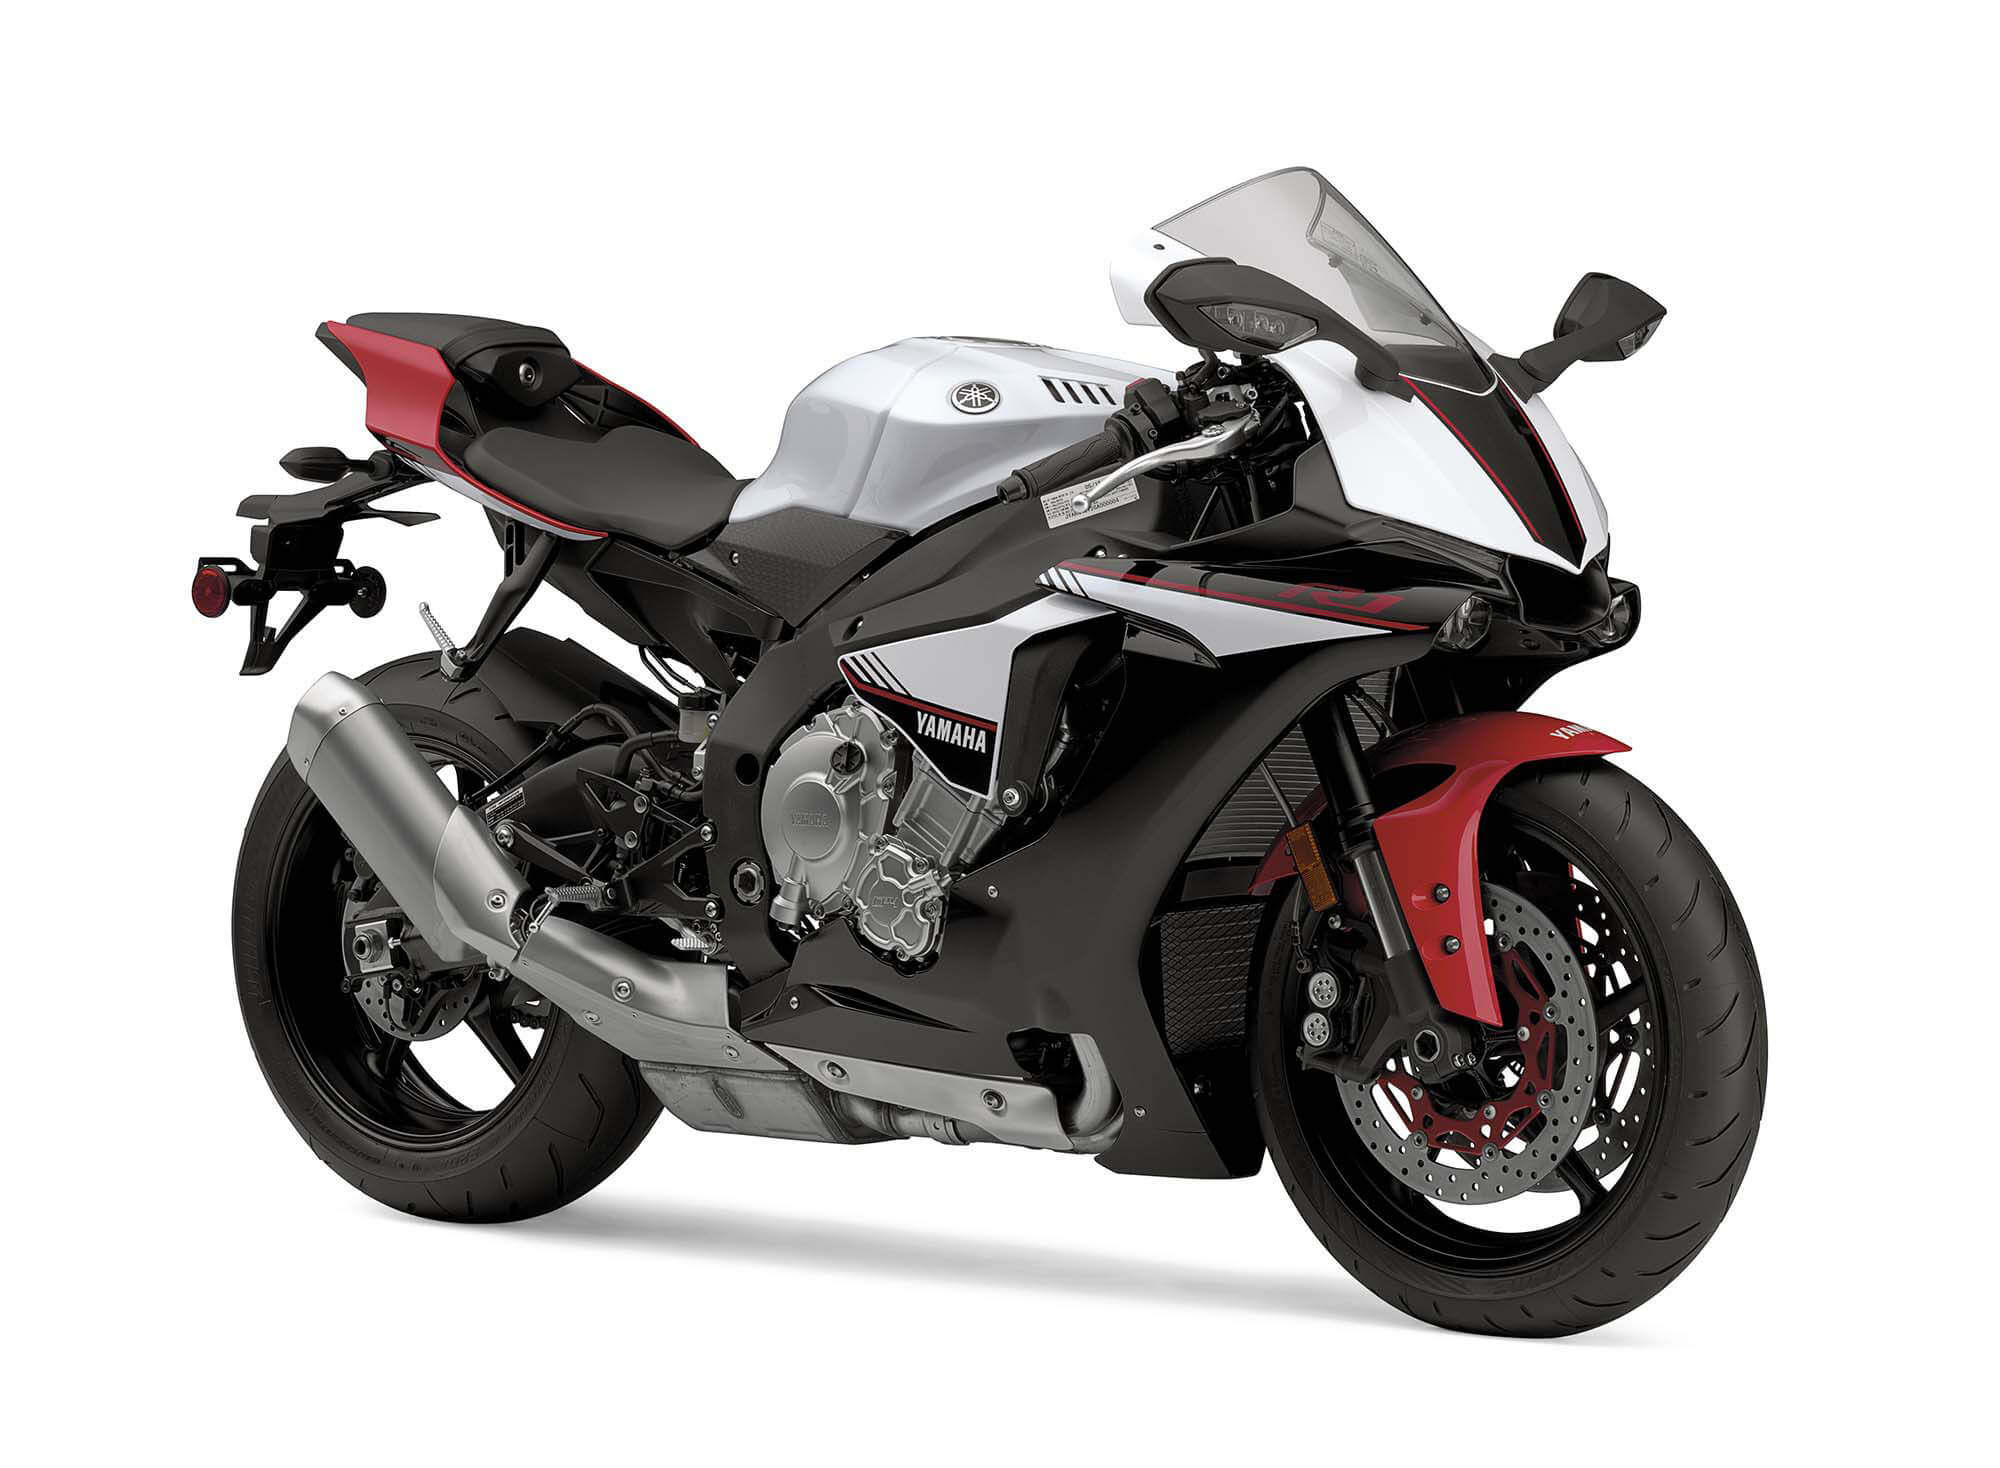 Yamaha Yzf R1s Price In India Yzf R1s Mileage Images